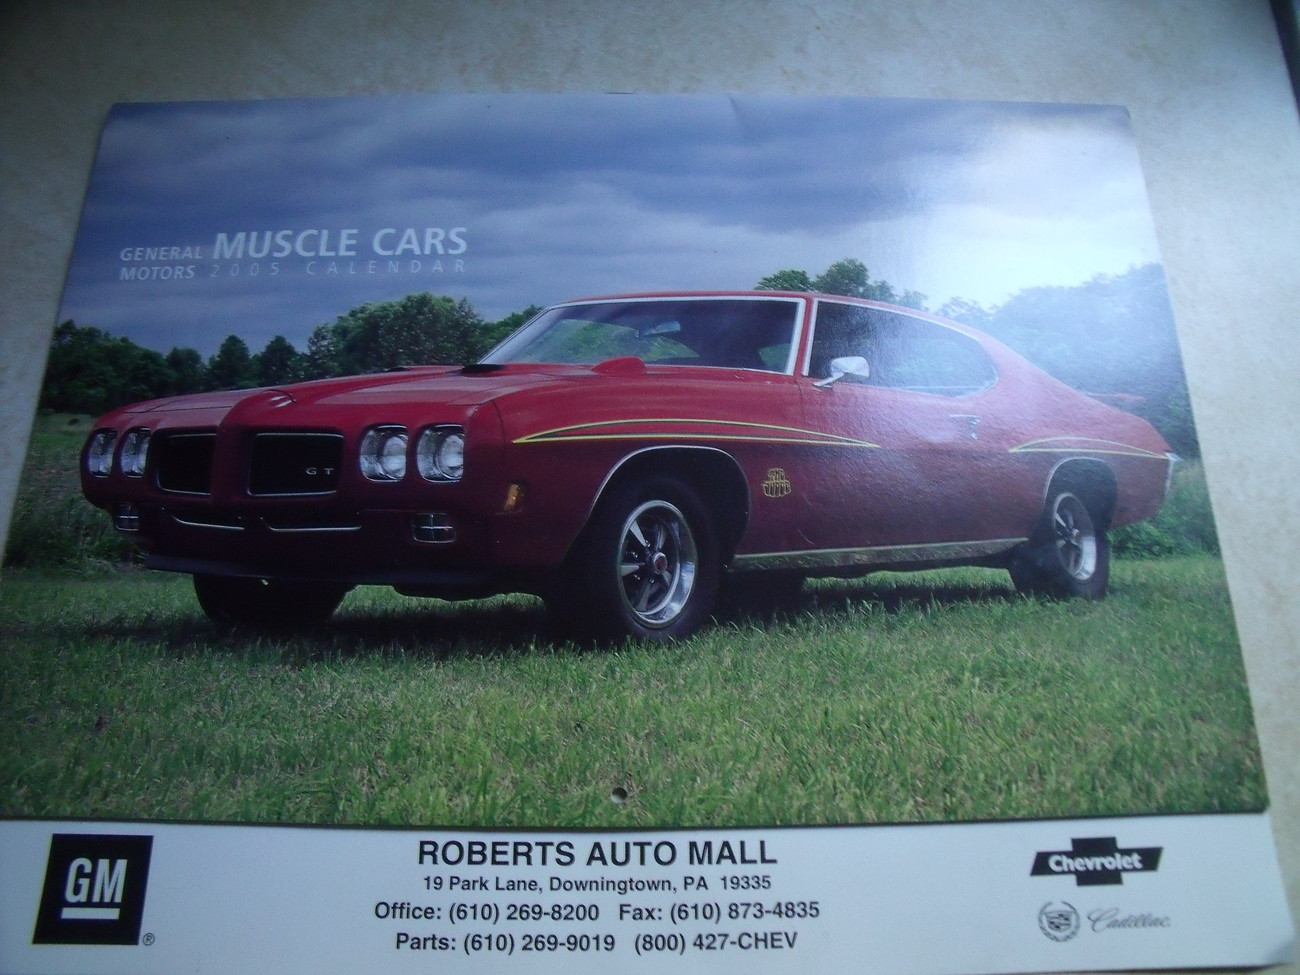 2005 GM Muscle Car Calendar from Roberts Auto Mall, Downingtown PA